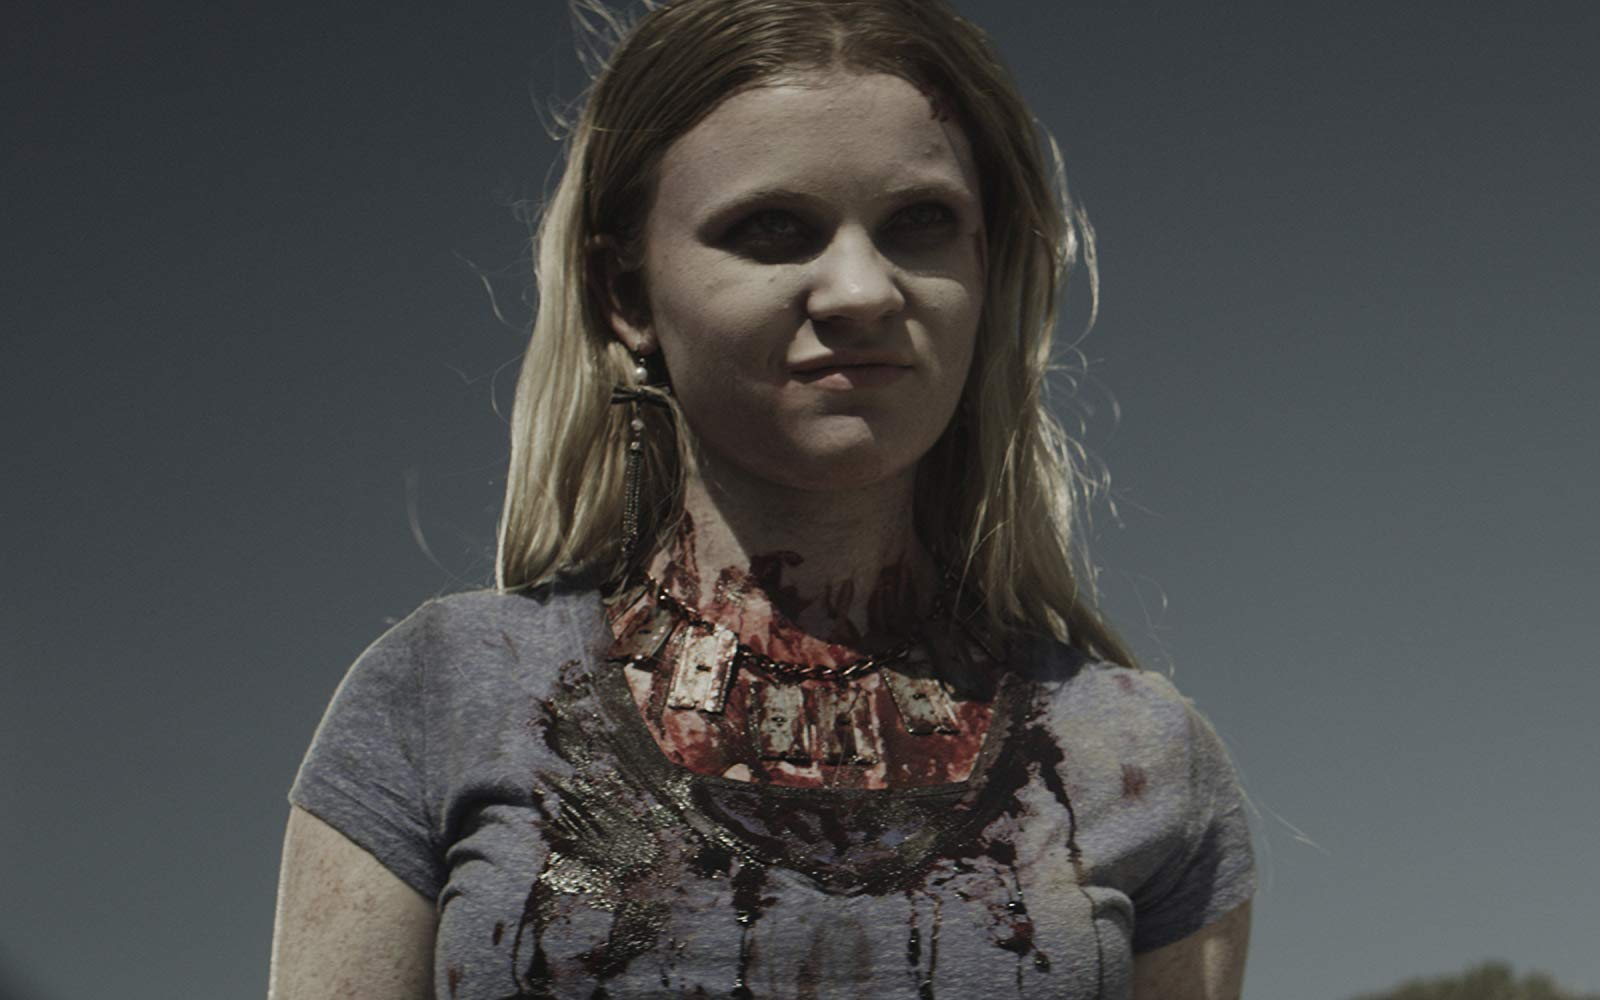 Sierra McCormick as Moira Karp, a bullied girl returned from the dead in Some Kind of Hate (2015)